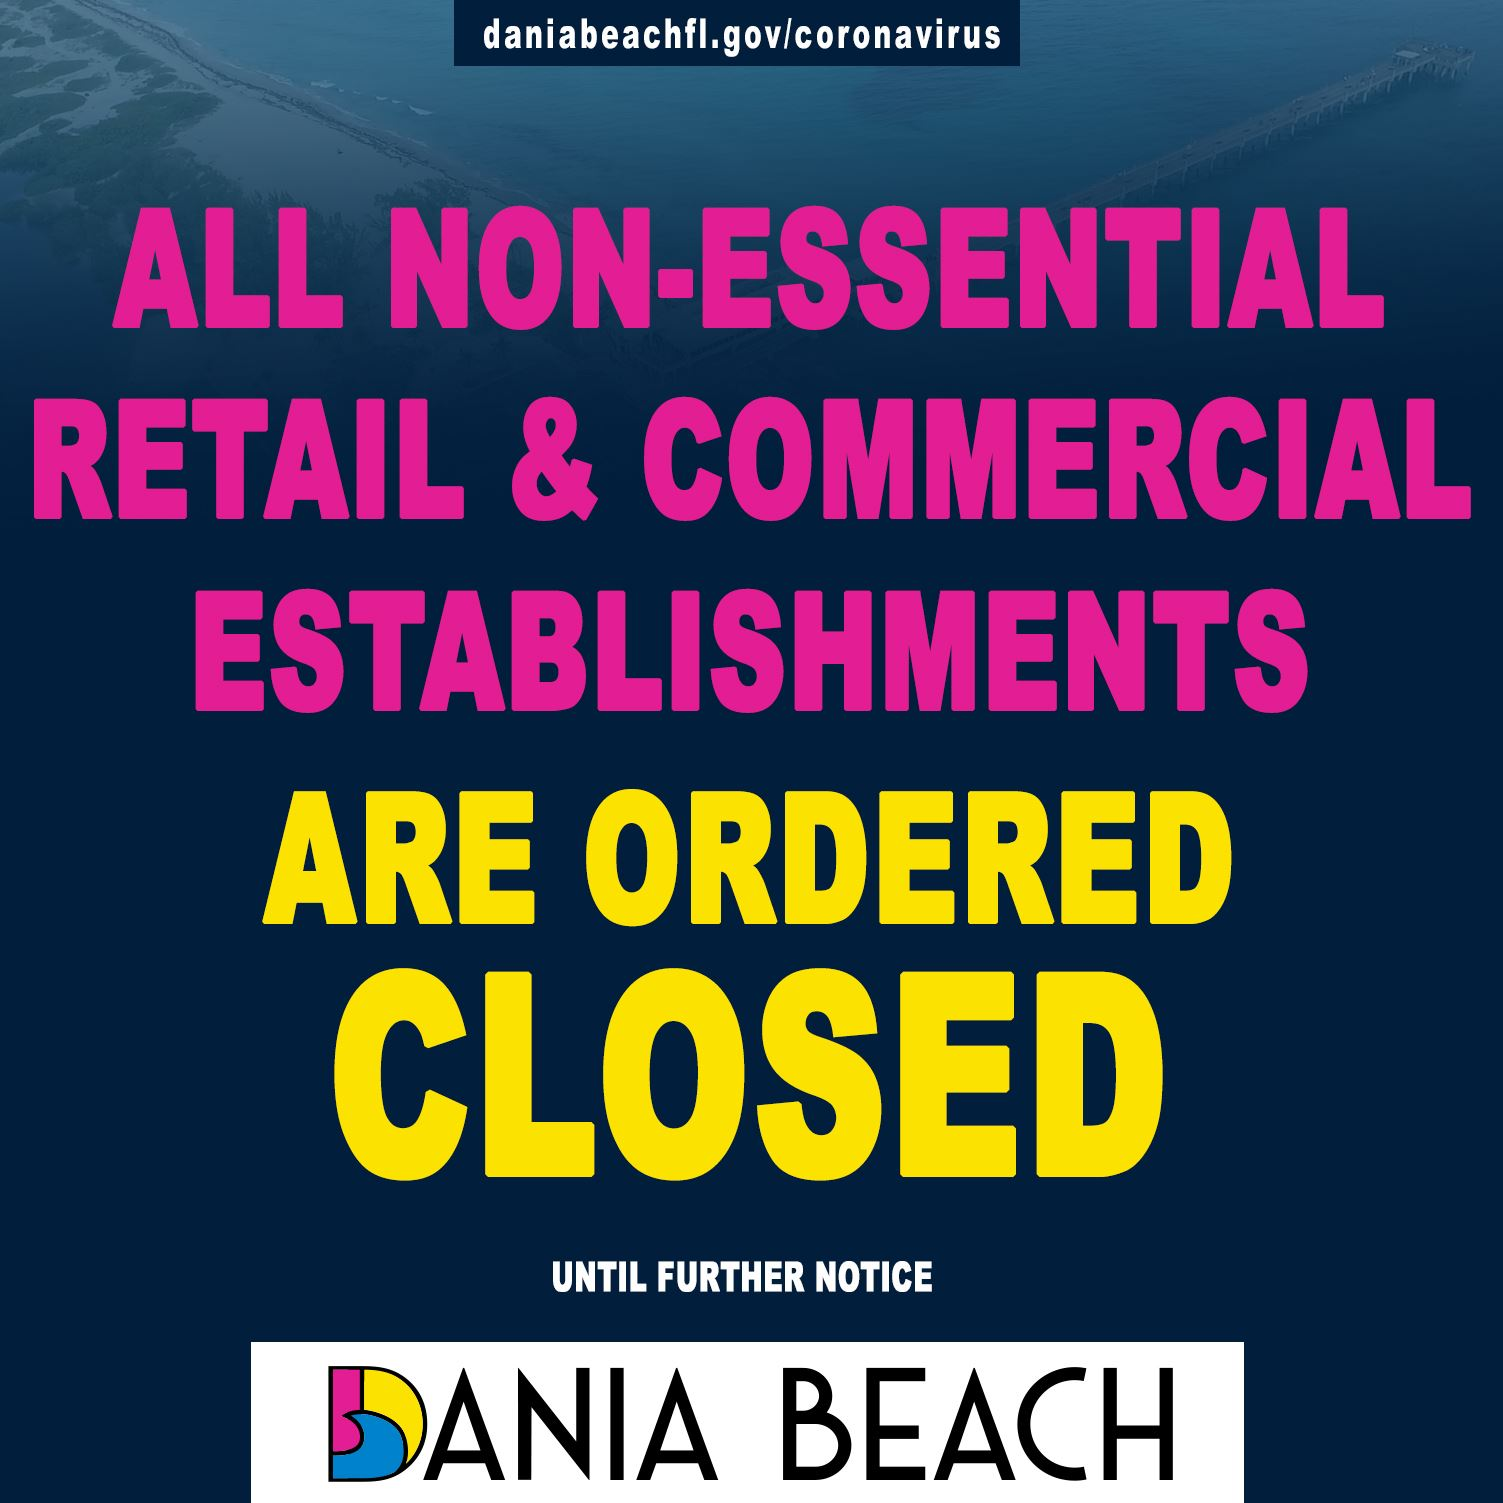 All non-essential retail and commercial establishments are ordered closed. Dania Beach